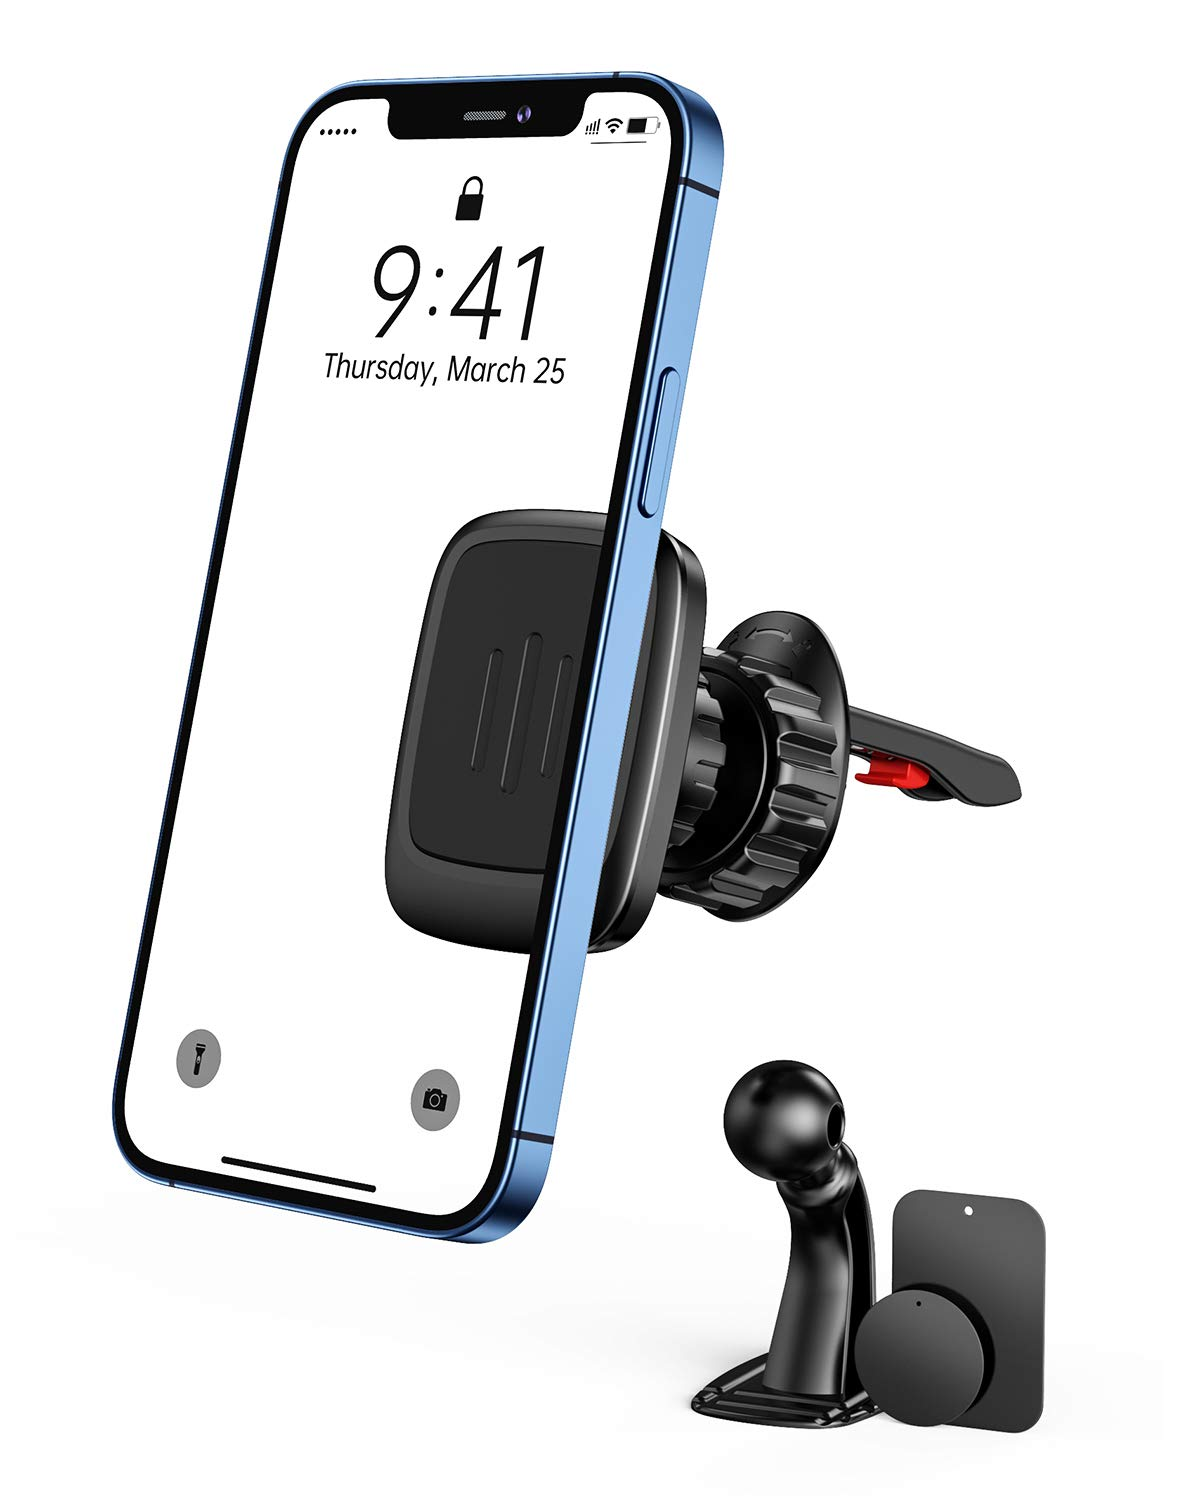 2021 GUSGU Phone Holder for Car, [Upgrated Clip] Magnetic Car Phone Holder, Air Vent Cell Phone Car Mount with Free VHB Adhesive Mounting for Dashboard, Compatible with iPhone,iPad,Samsung, LG, etc